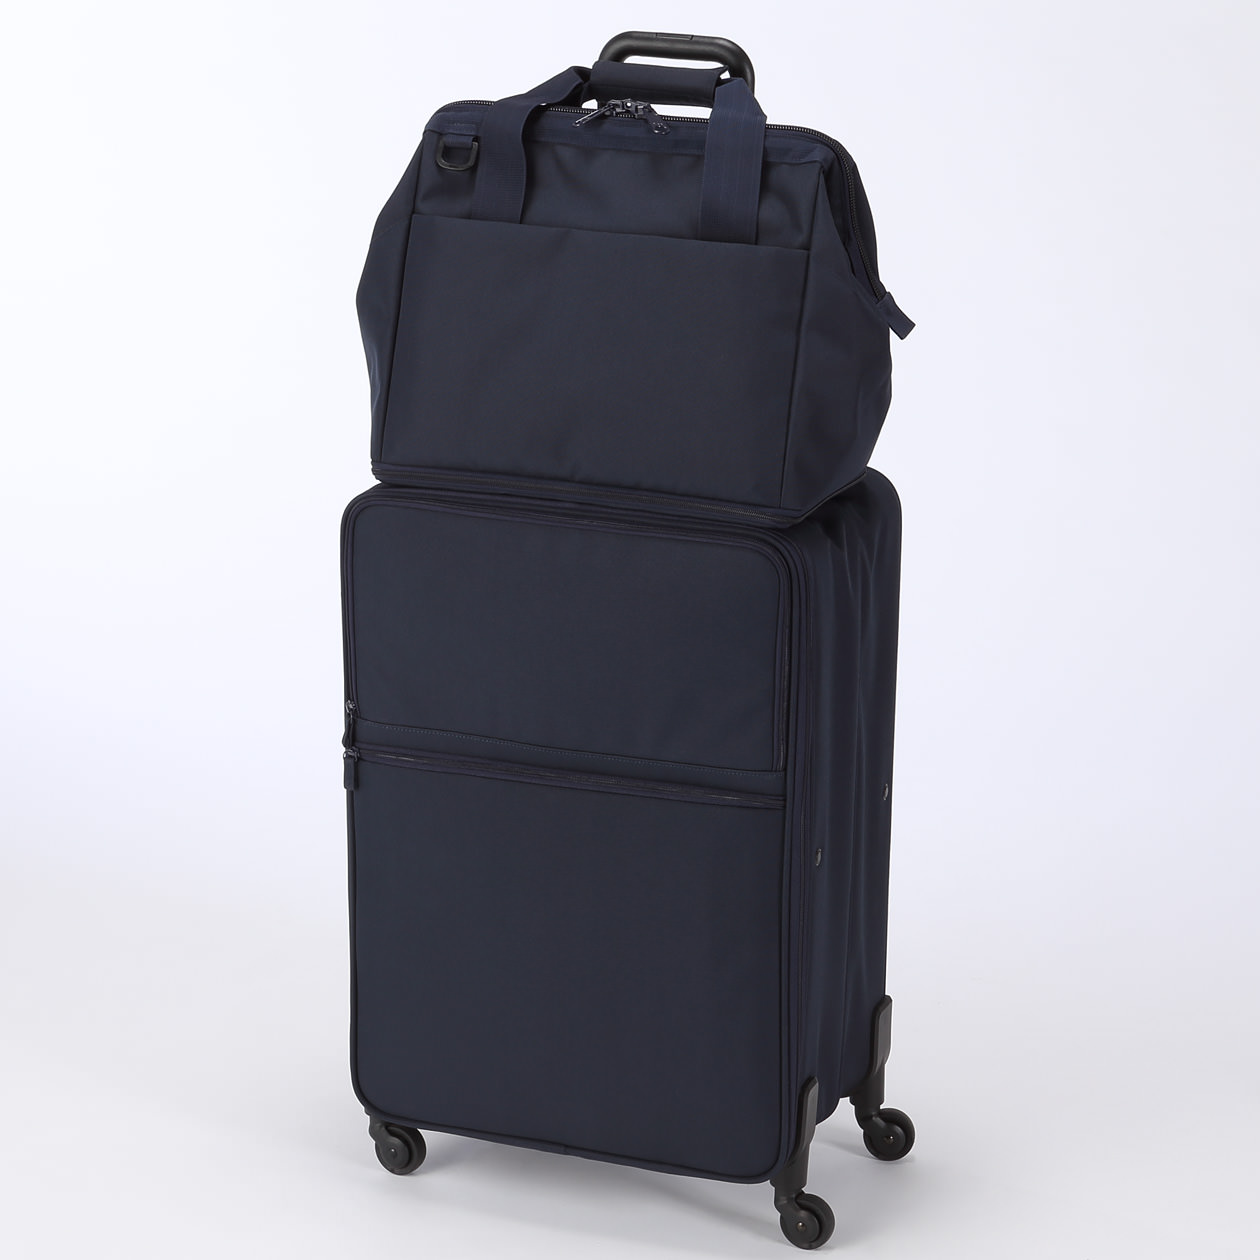 Polycarbonate hard carry suitcase with stopper muji for Valise muji prix